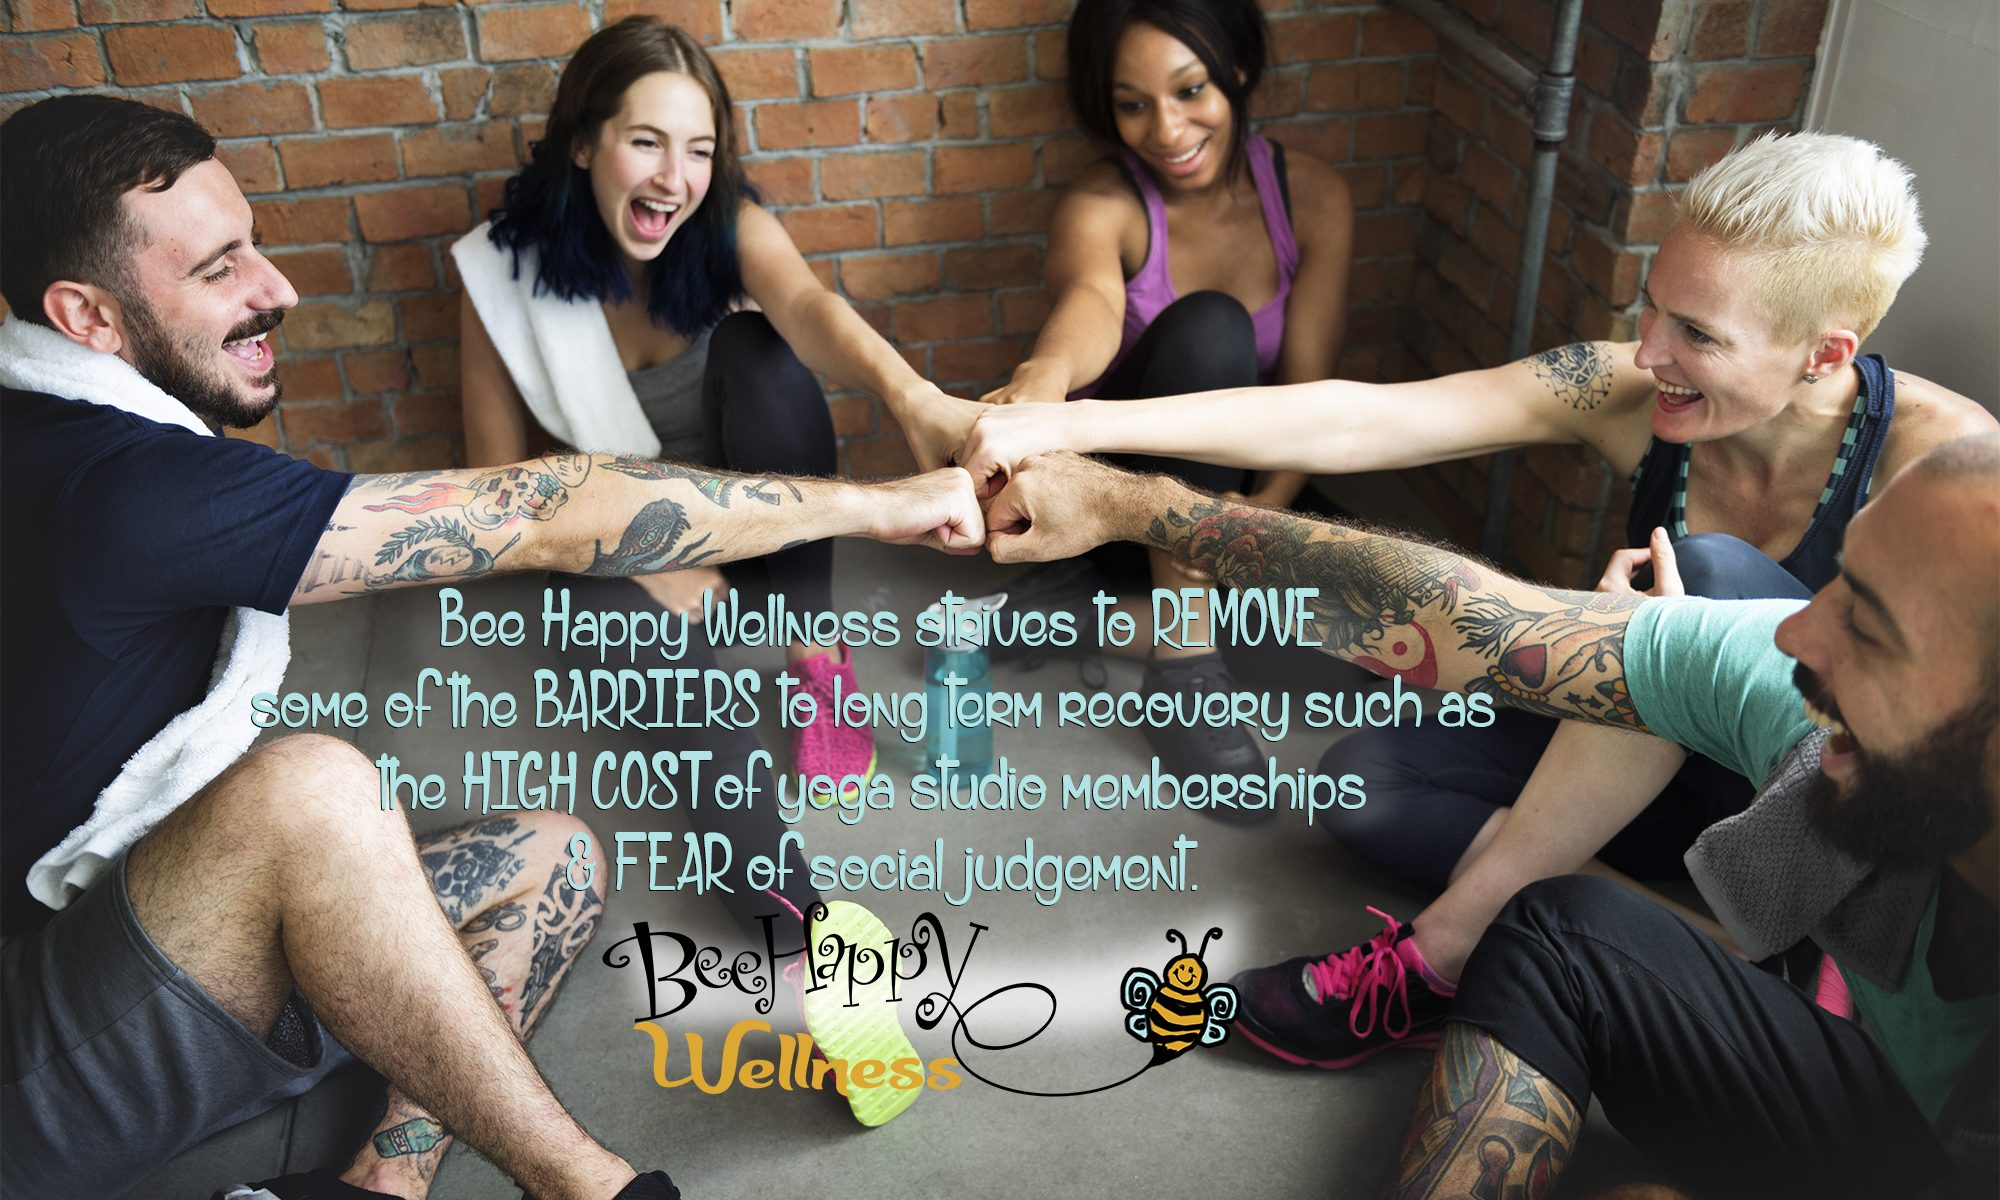 Bee Happy Wellness Center - Yoga, myofascial release treatment, massage, mindfullness, meditation, halotherapy, salt room, salt room yoga, halotherapy yoga, salt therapy, reiki, Aerial yoga, Juice bar, coffee